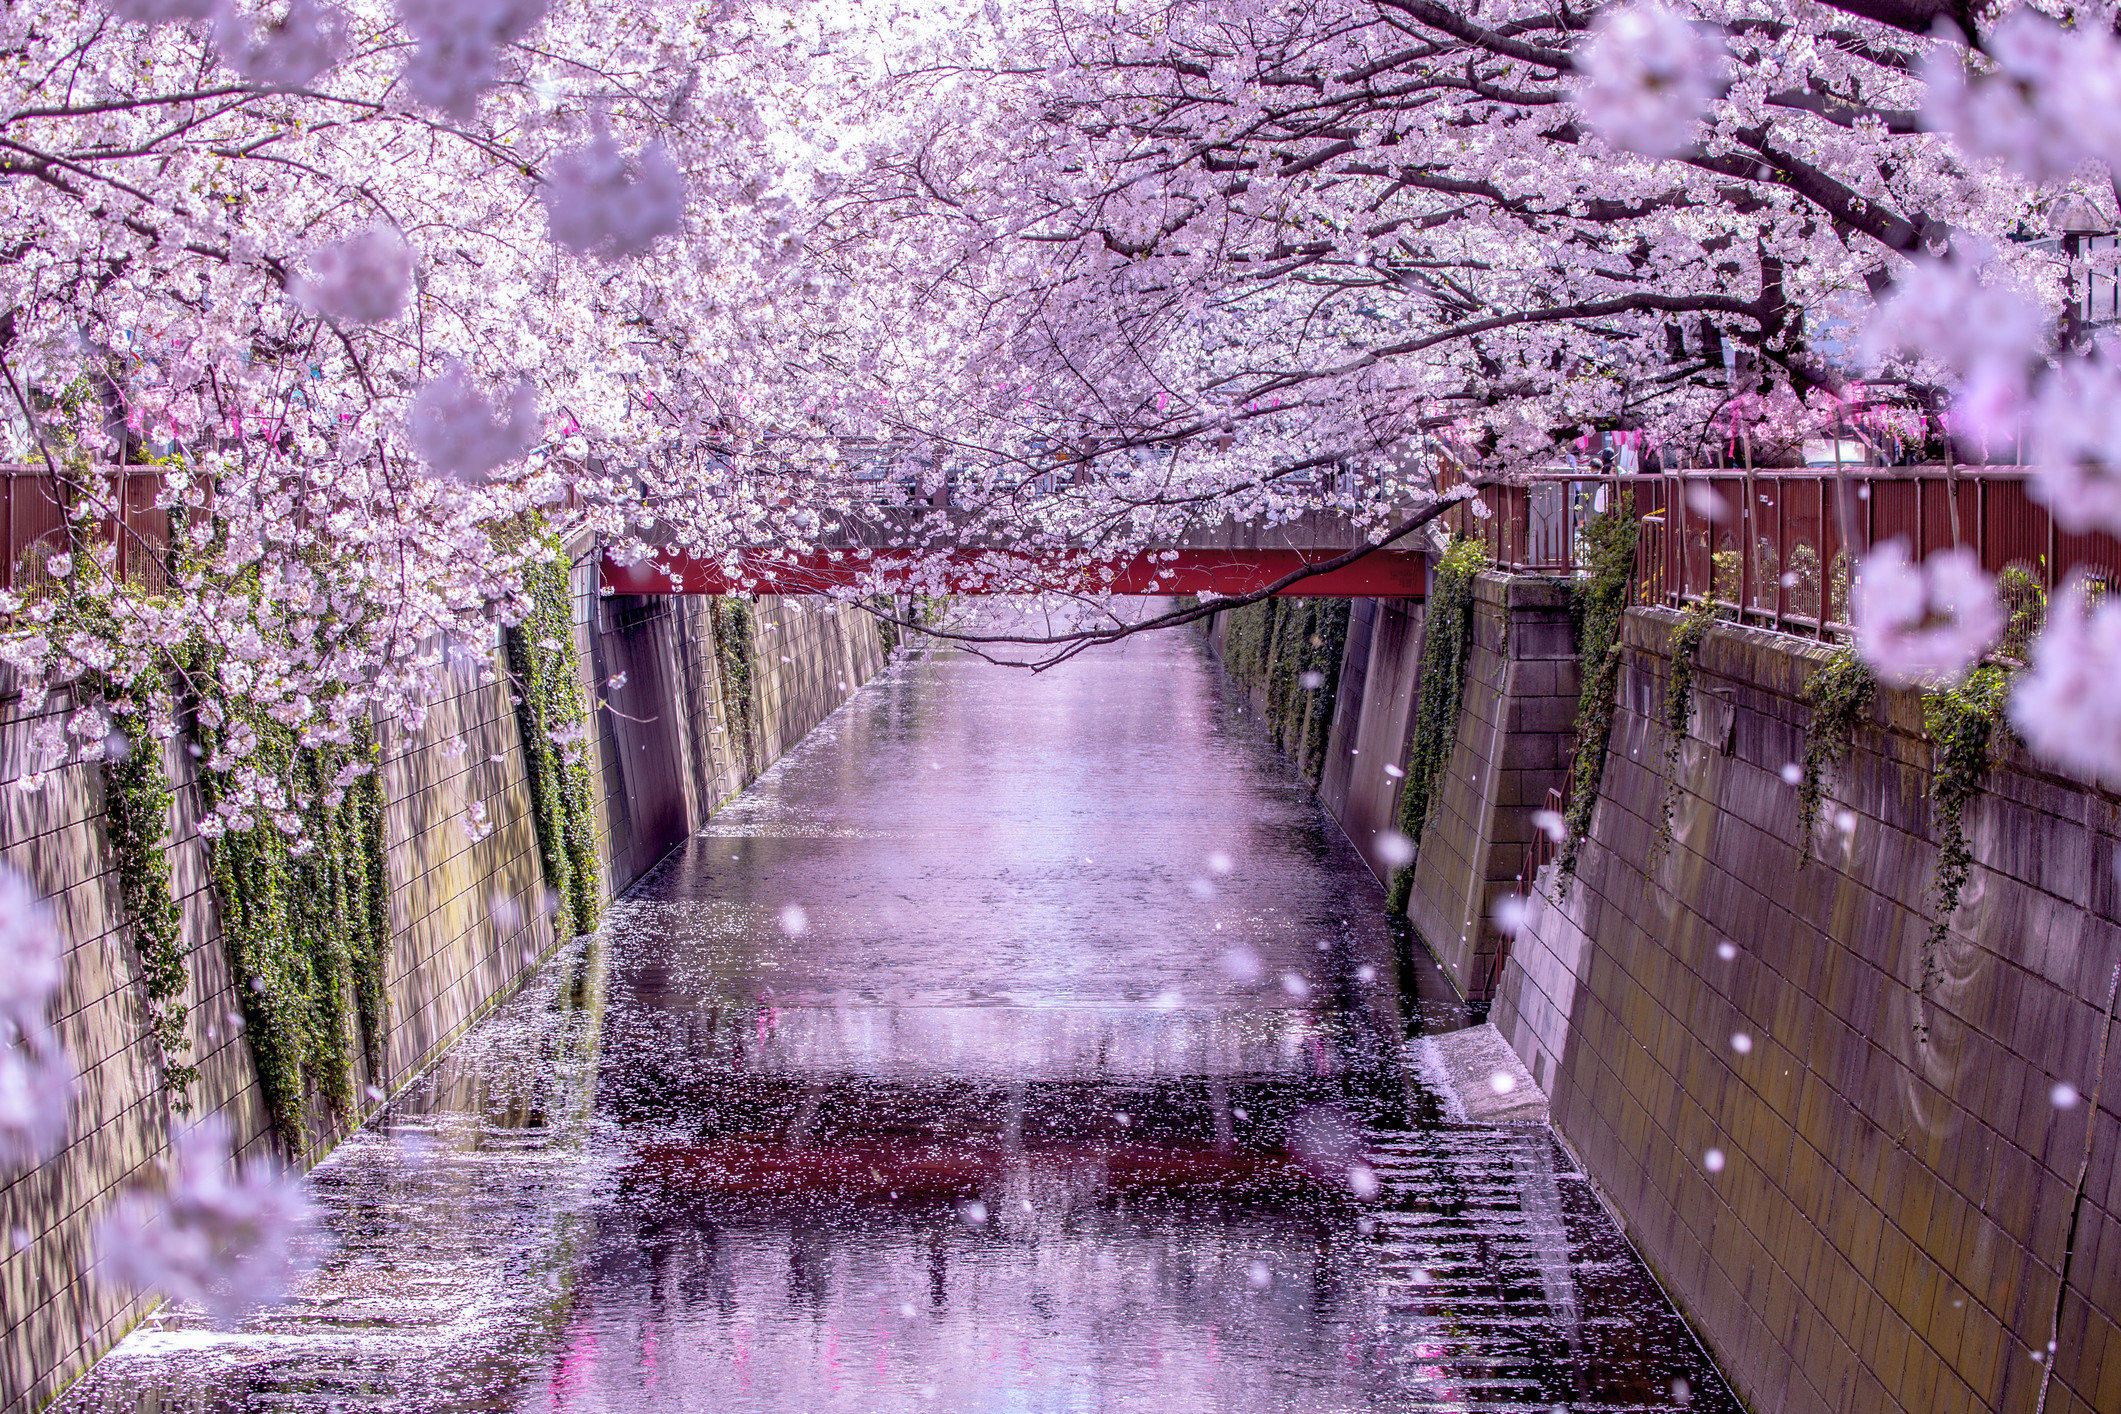 Offbeat outdoor flower plant cherry blossom blossom season spring Nature branch rain surrounded